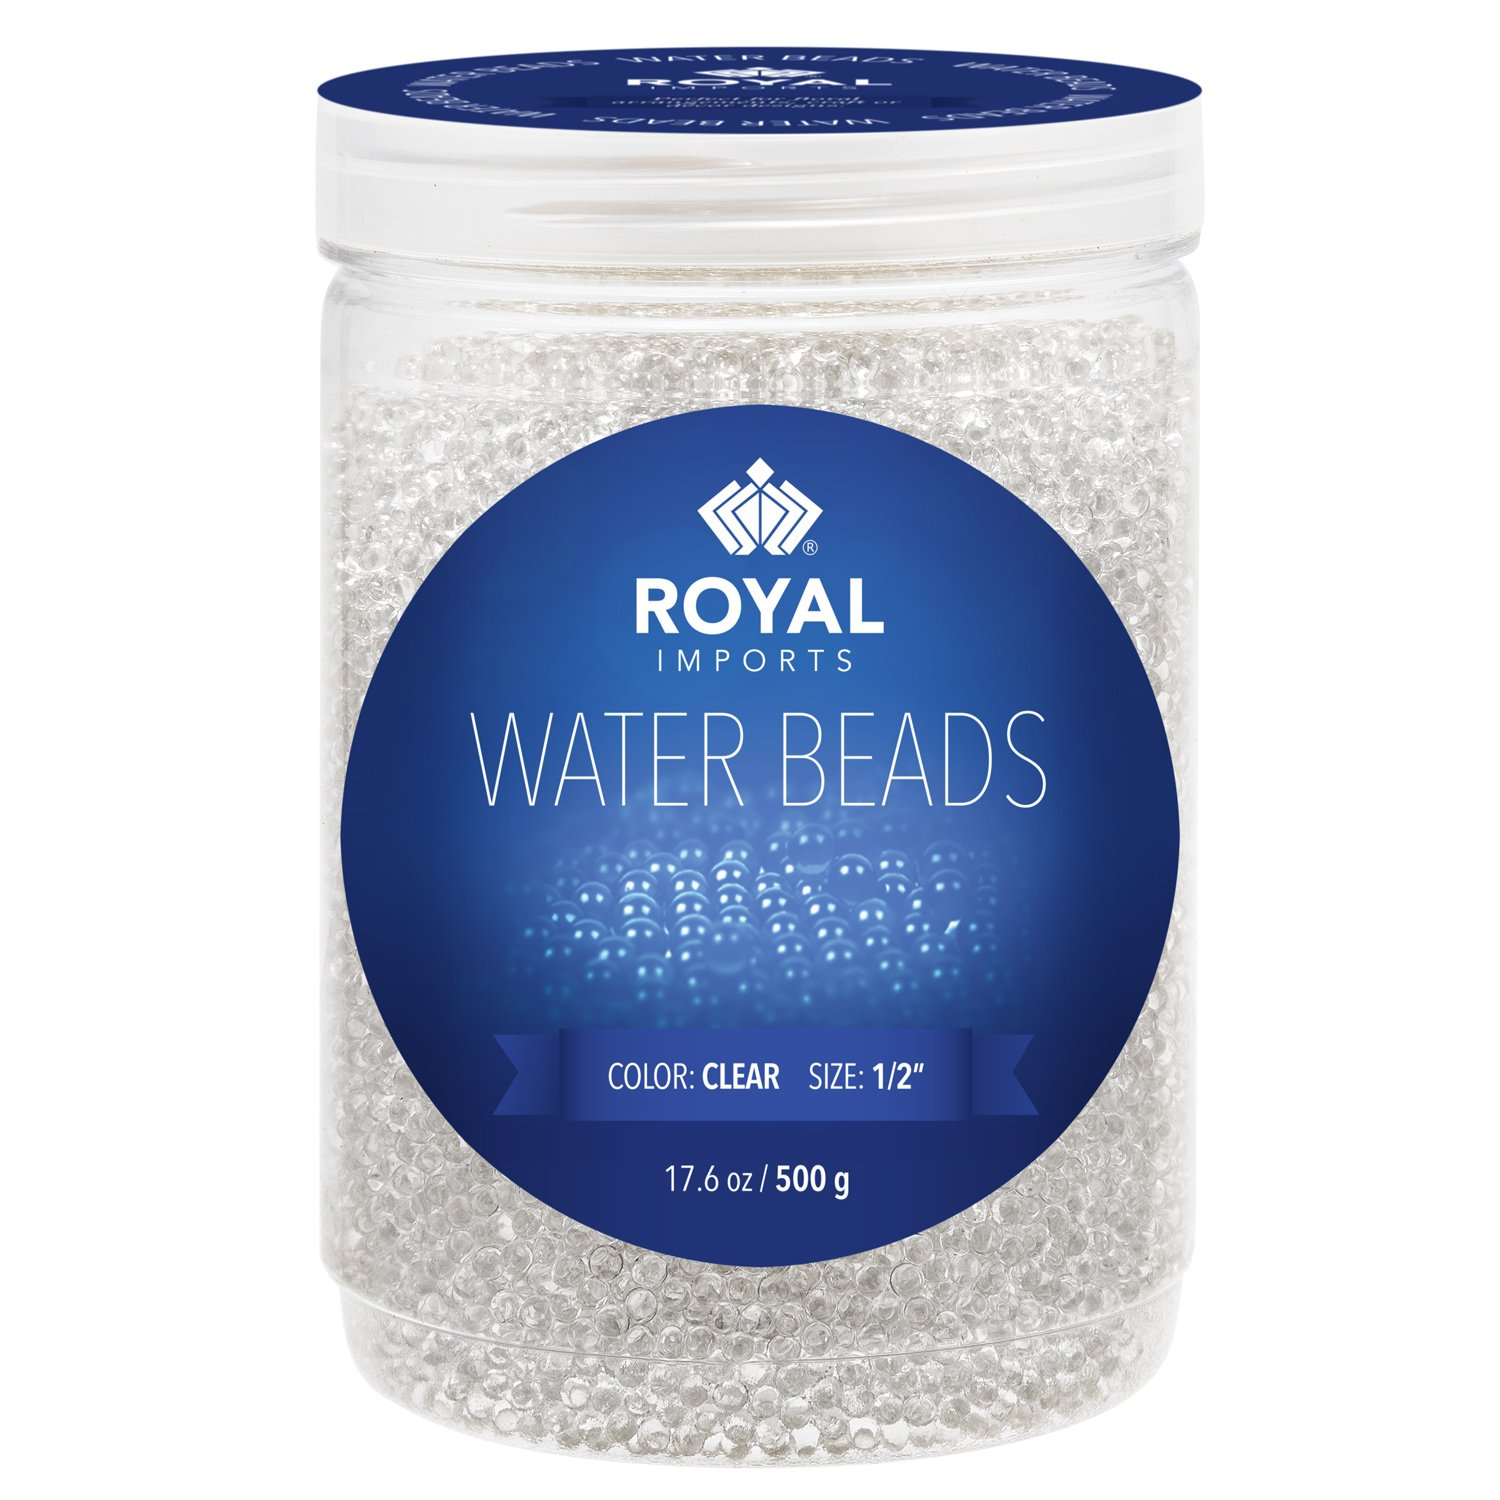 Royal Imports 20,000 Water Beads Vase Filler, Clear Gel Pearls Jelly Balls For Centerpieces, Weddings, Parties, Decorations (500 Gram - Makes 16 Gallons)